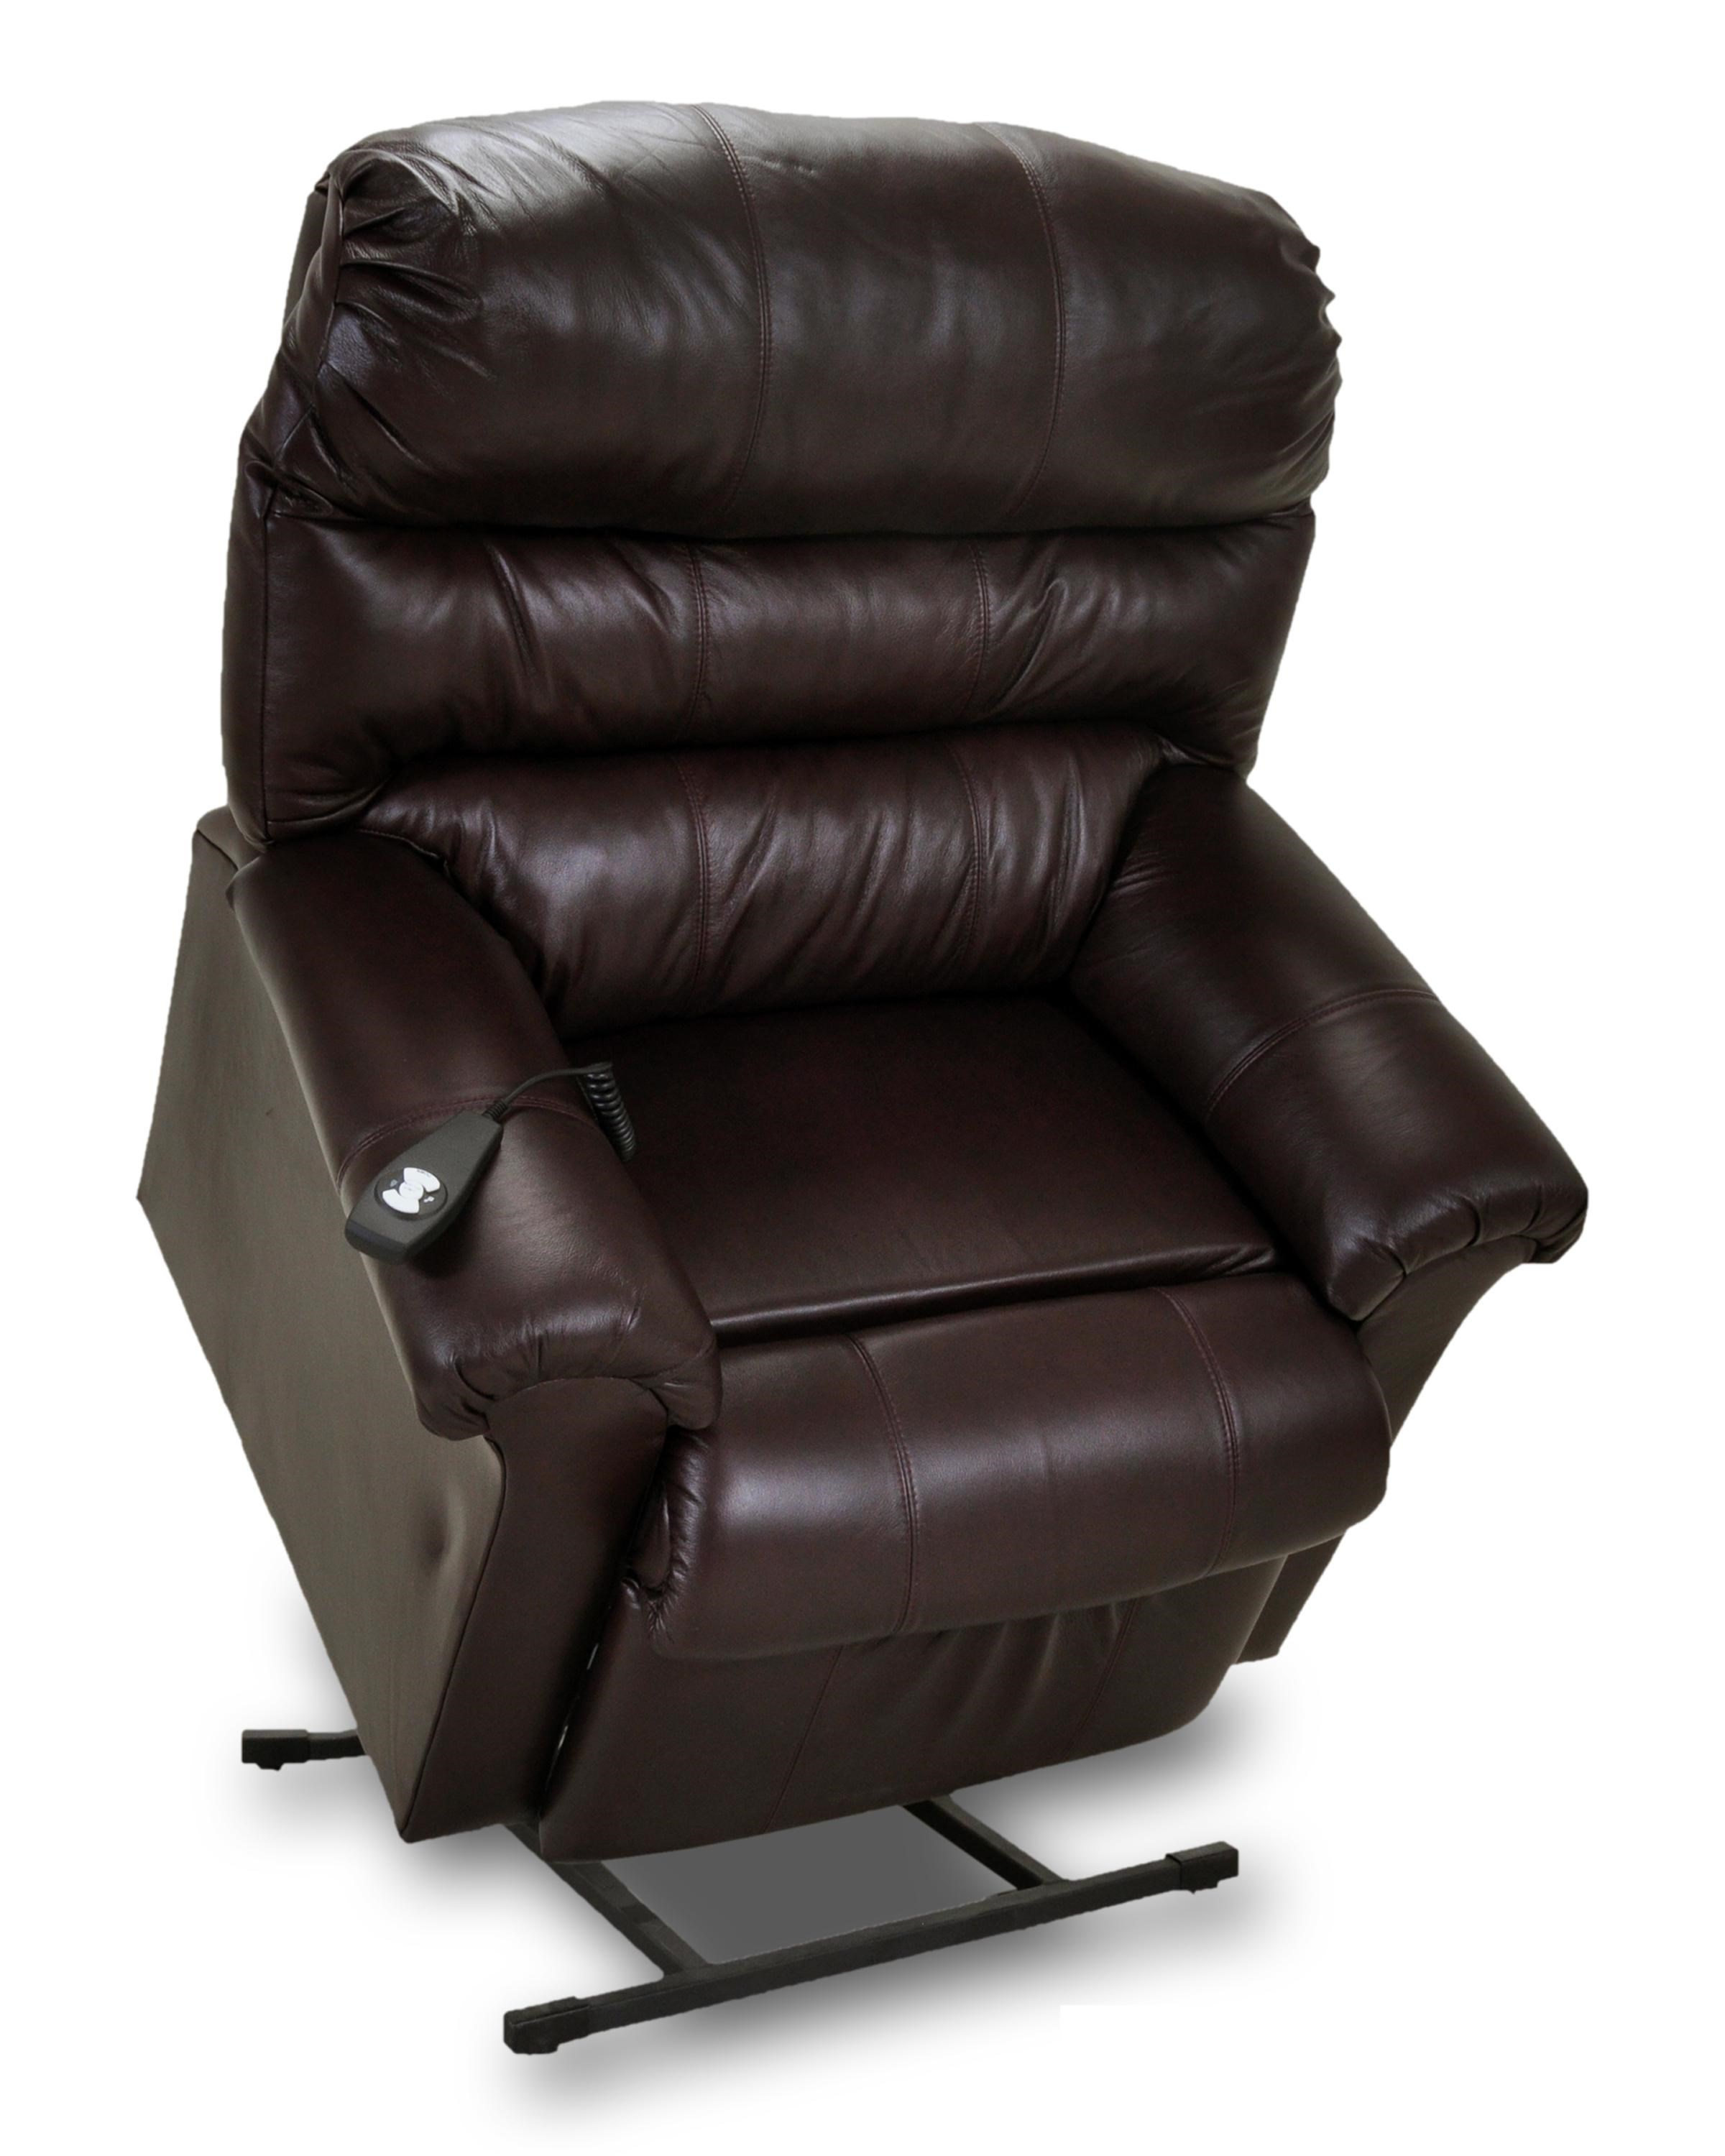 Electric Recliner Leather Chairs Lift And Power Recliners Power Recliner With Plush Pillow Arms By Franklin At Miskelly Furniture